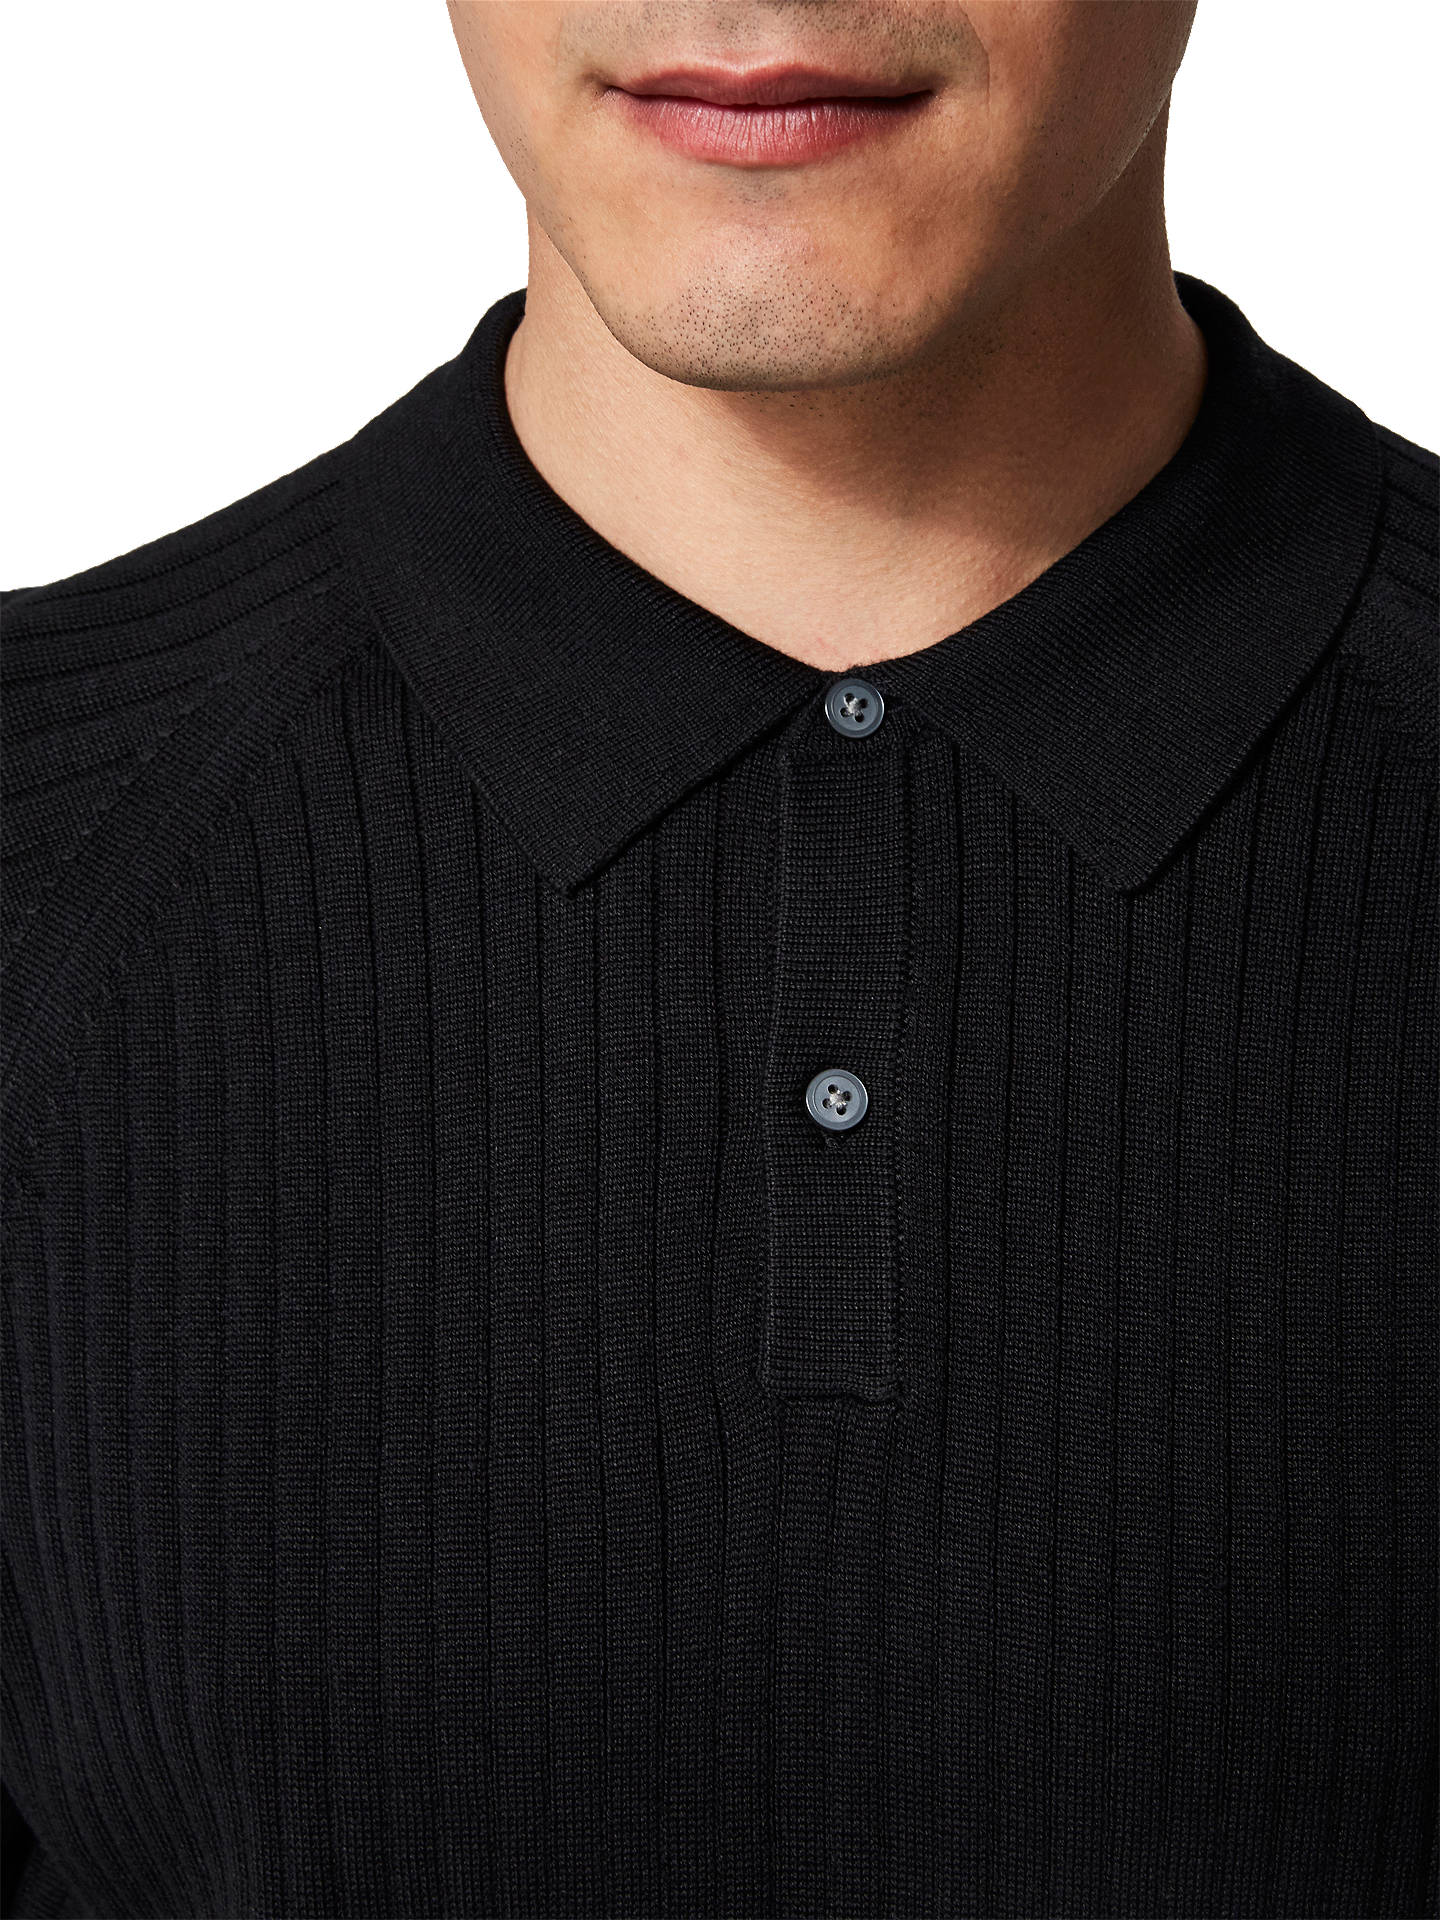 Buy Selected Homme Frank Polo Neck Long Sleeve Jumper, Black, XL Online at johnlewis.com